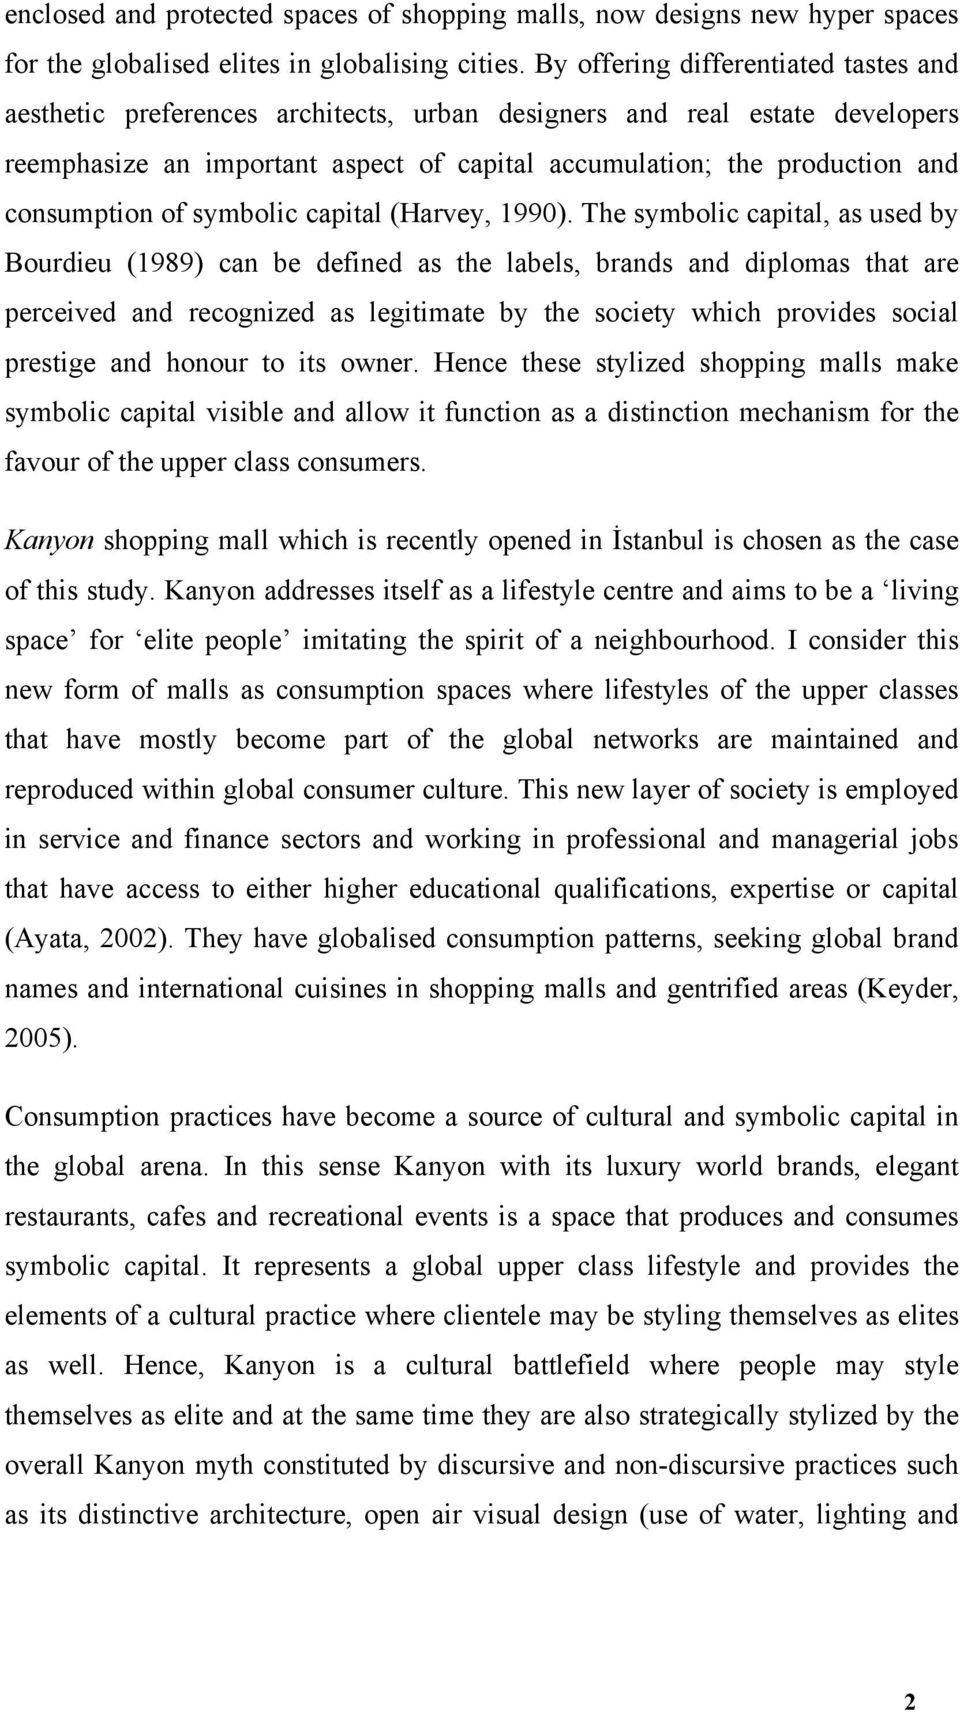 consumption of symbolic capital (Harvey, 1990).